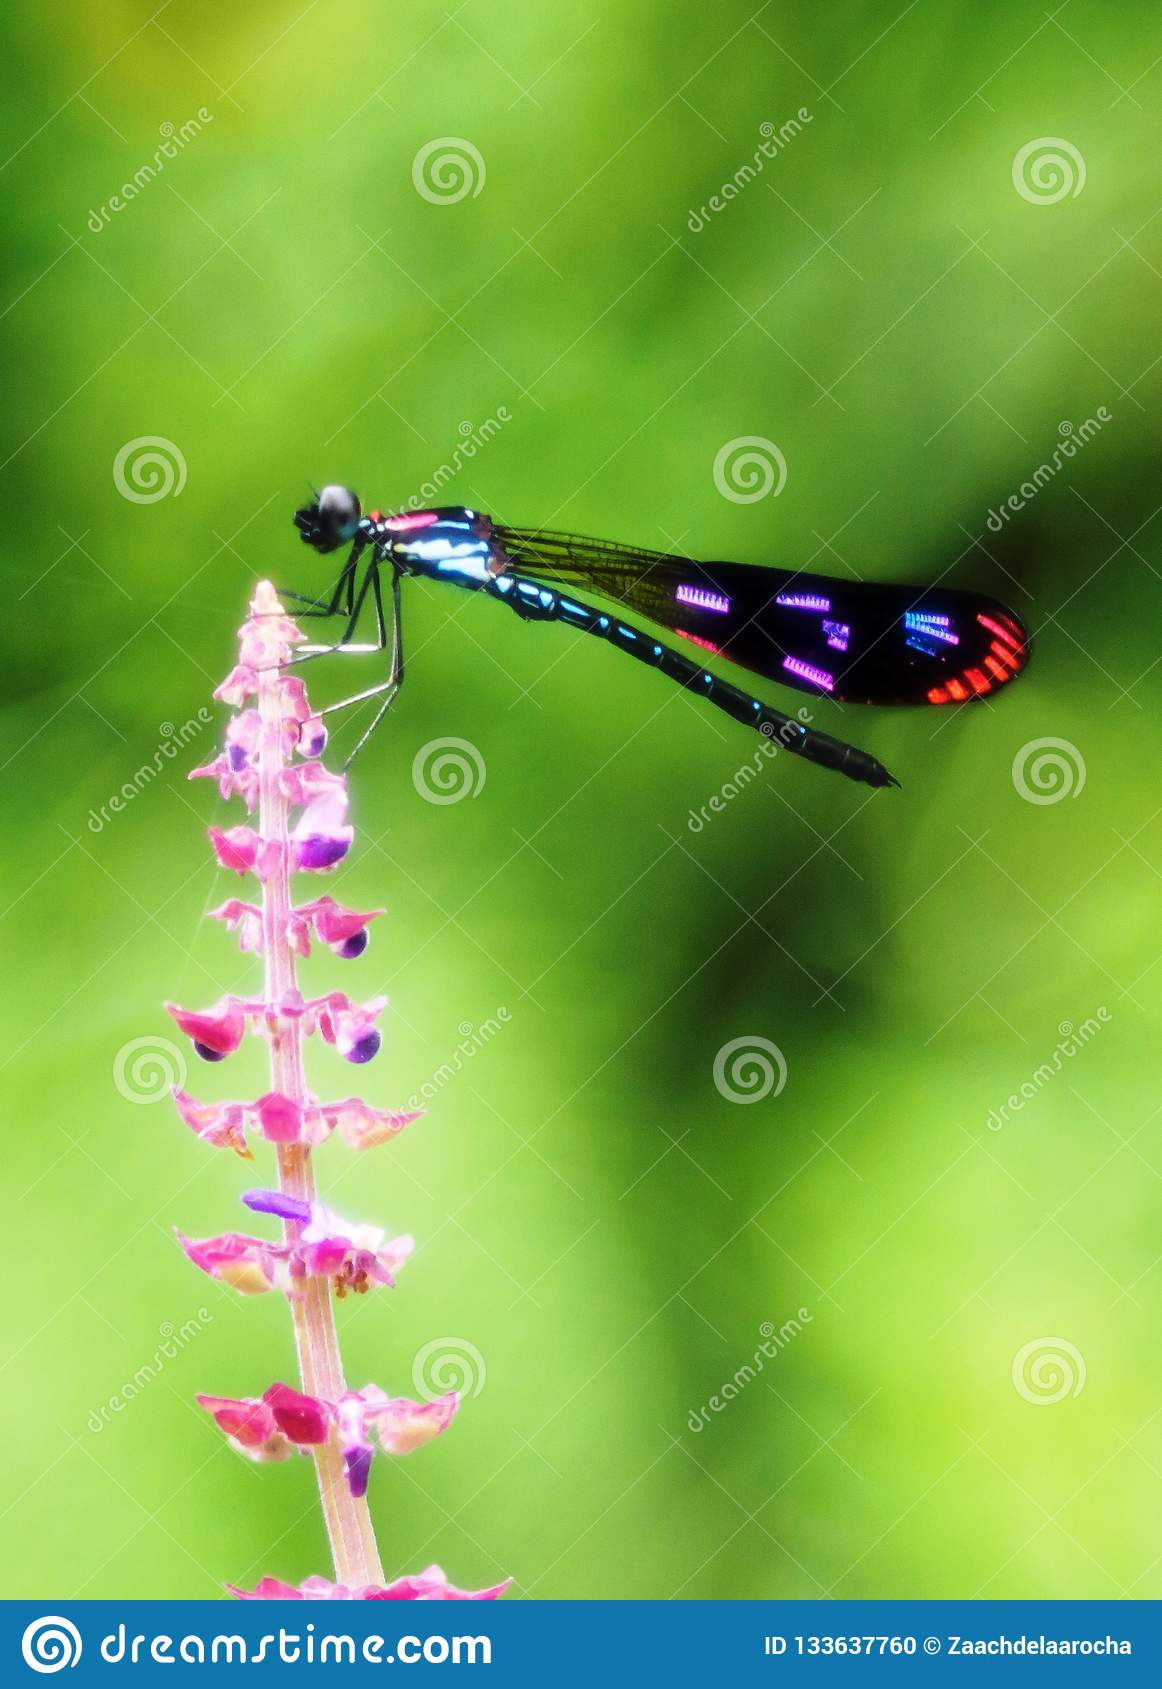 A colorful damselfly on pinkish flower